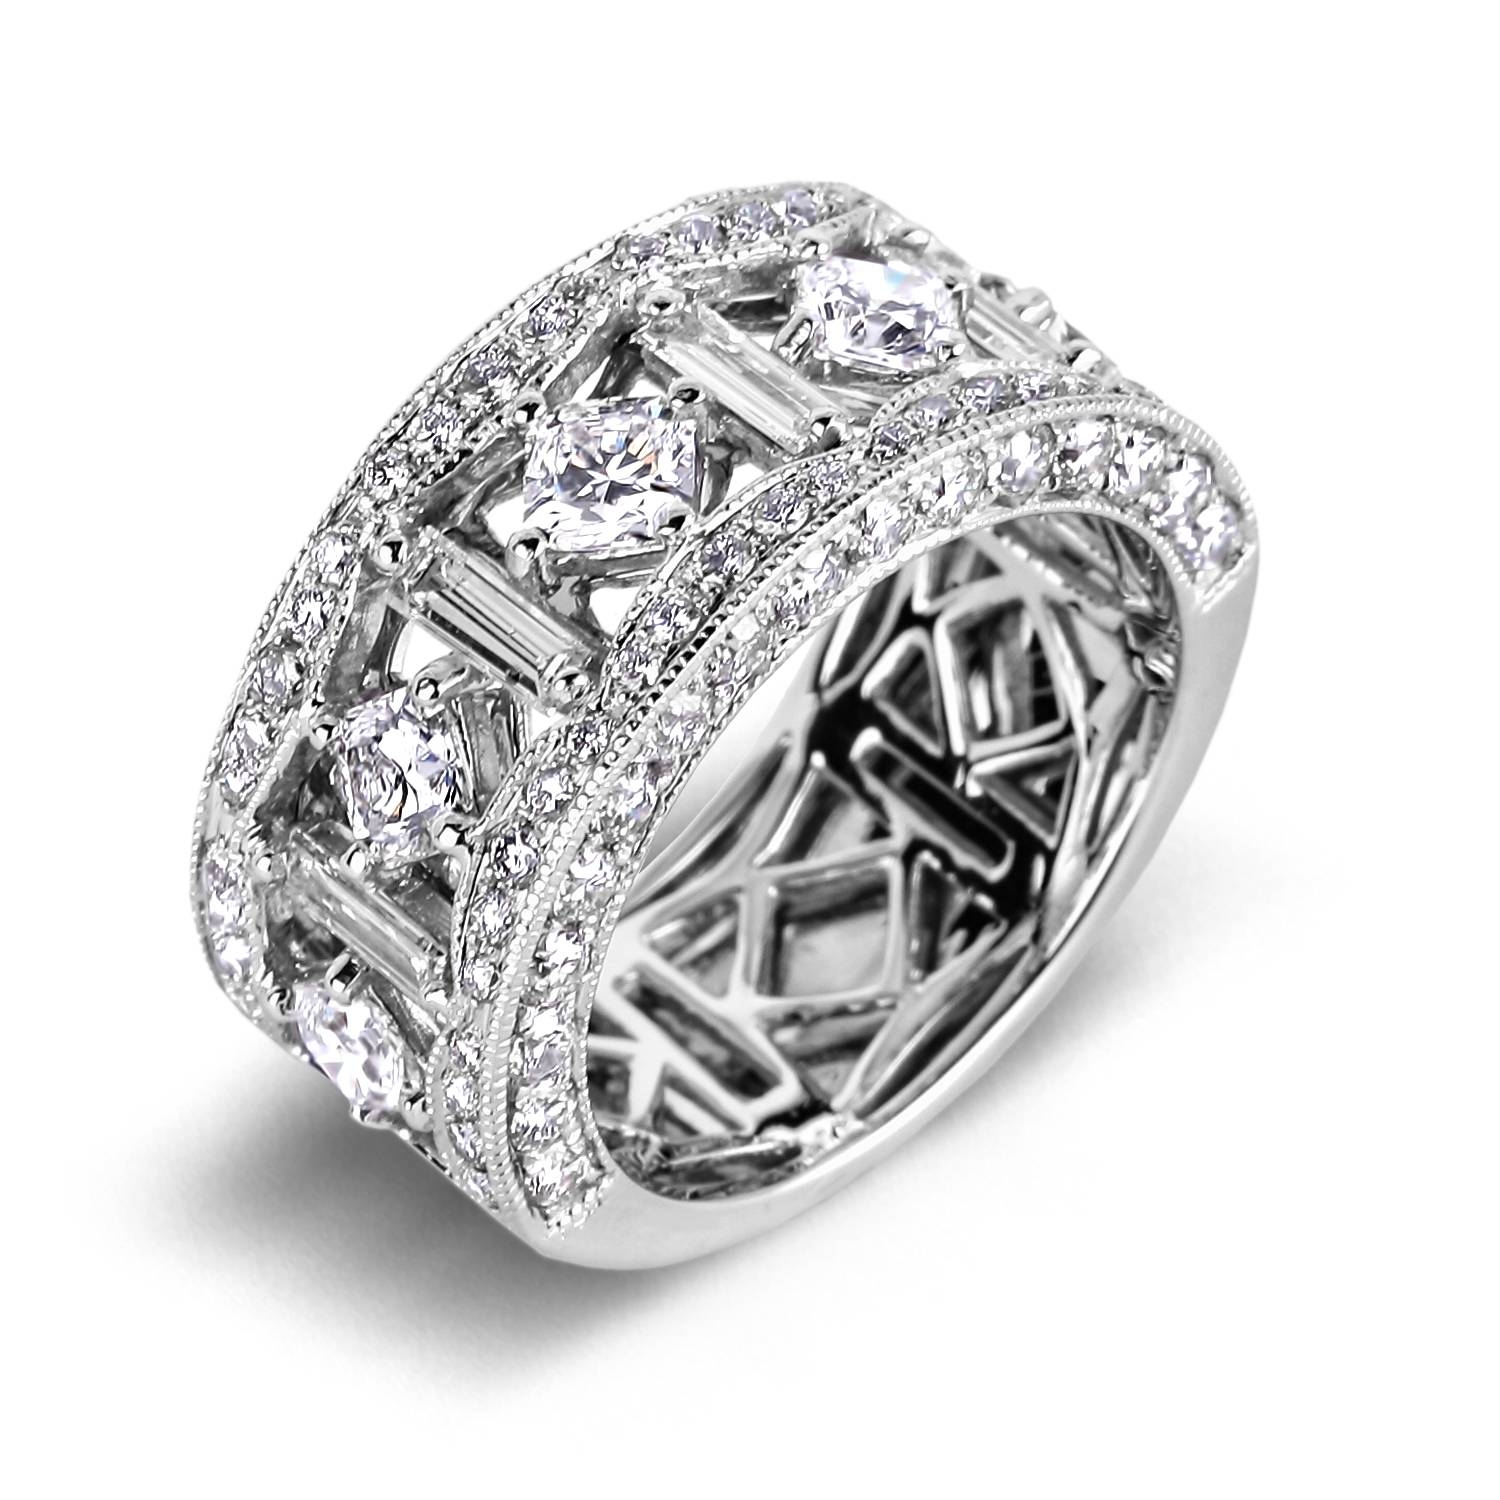 Wedding Anniversary Rings Diamonds | Wedding Ideas With Regard To Most Recent Anniversary Rings (View 24 of 25)